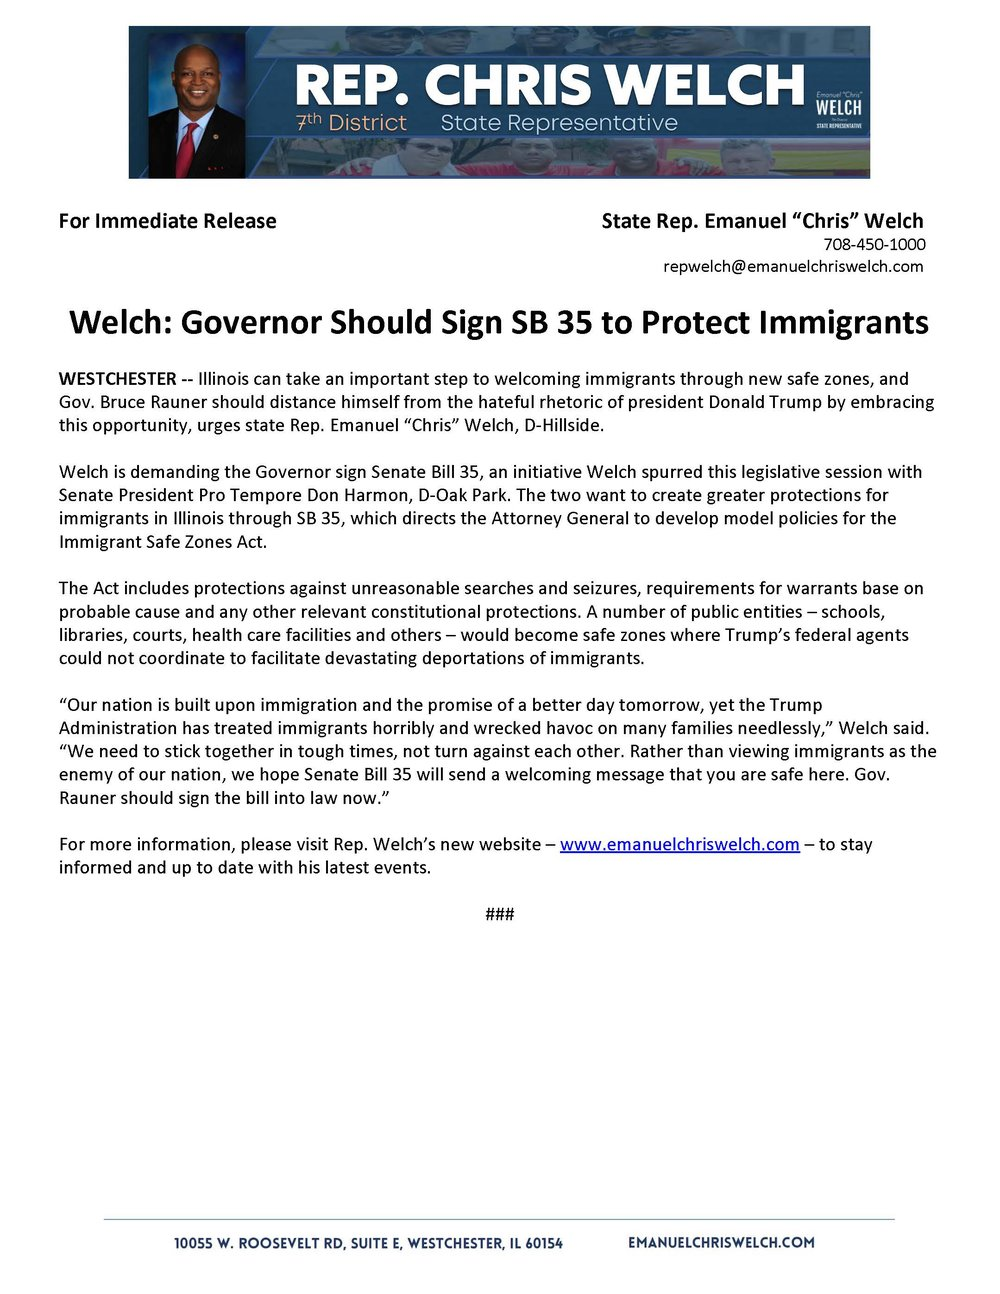 Welch:   Governor Should Sign SB 35 to Protect Immigrants  (July 20, 2018)